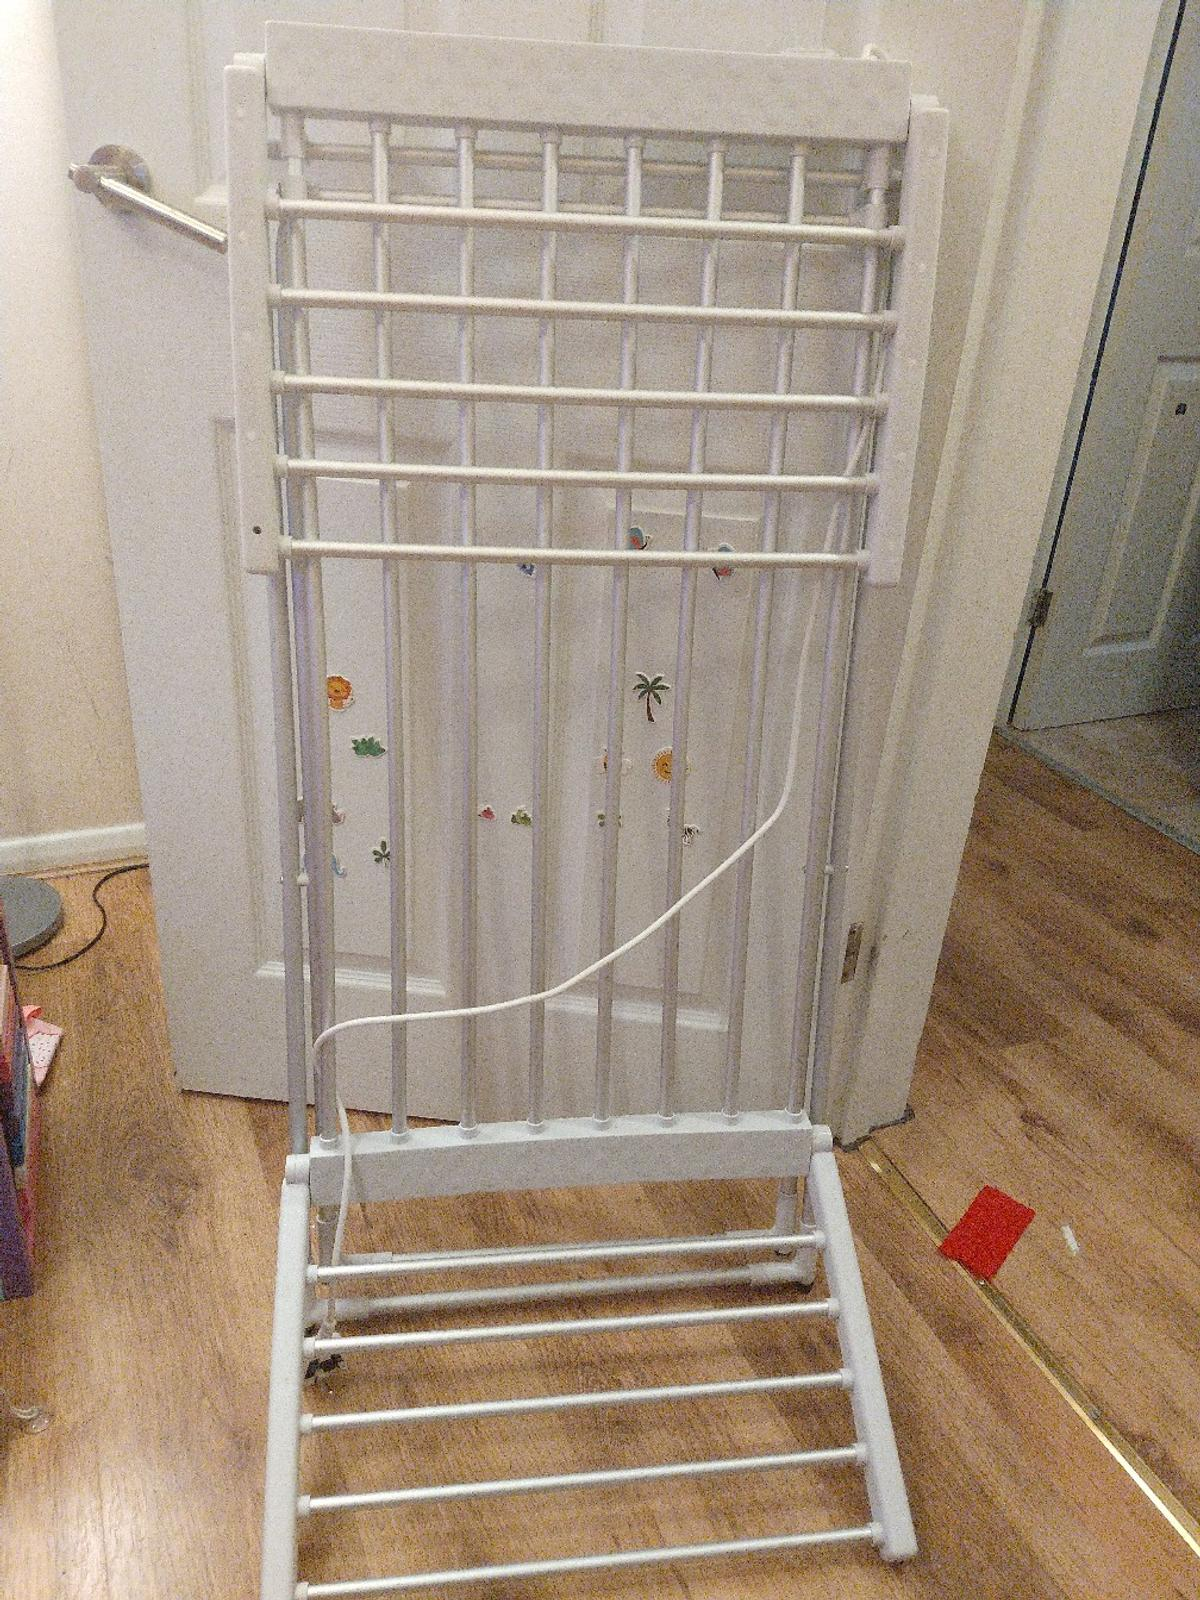 Electric indoor cloths airer (dryer) Bought 8 months ago but used very little because we didn't had enough room for all the cloths so we bought a tumble dryer. Perfect condition!